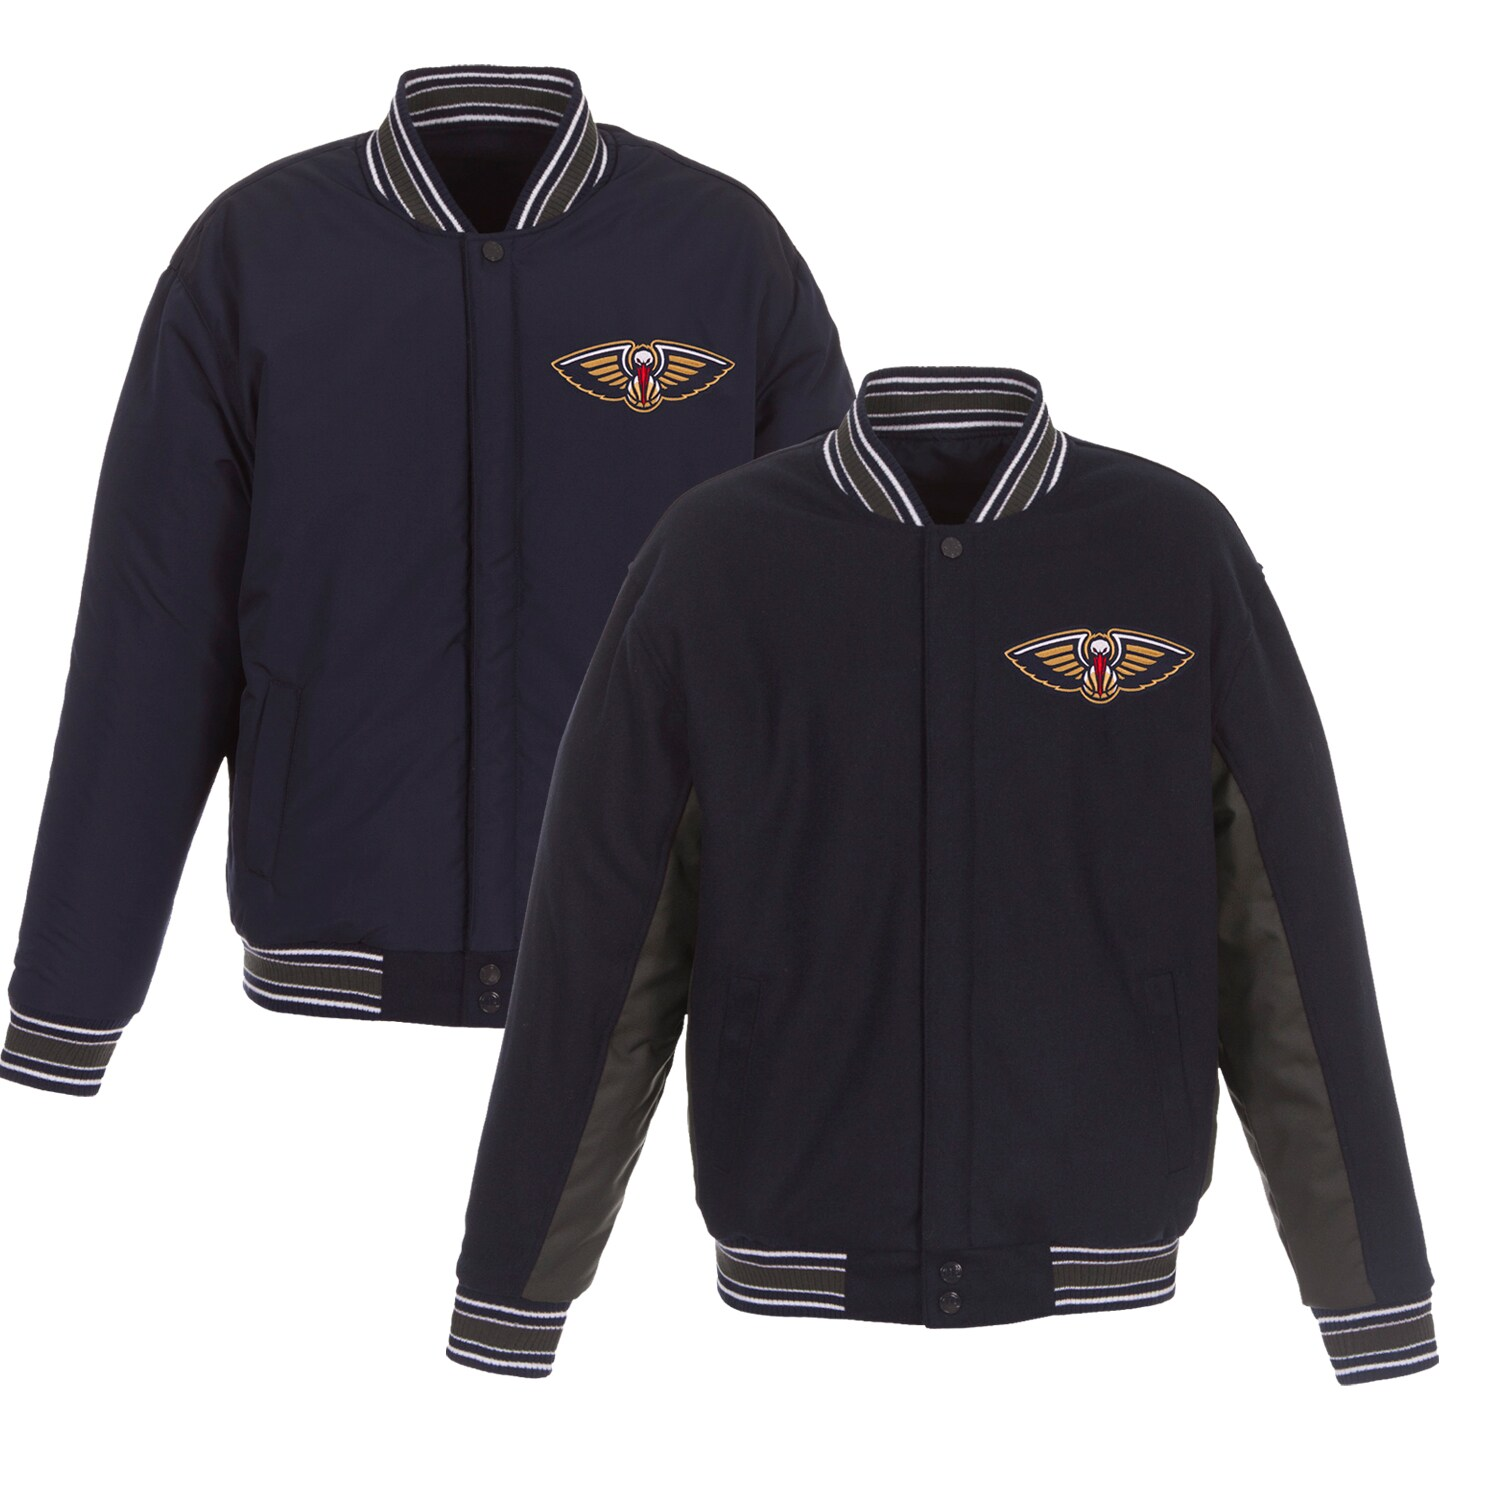 New Orleans Pelicans JH Design Reversible Wool & Poly-Twill Full-Snap Jacket - Navy/Charcoal